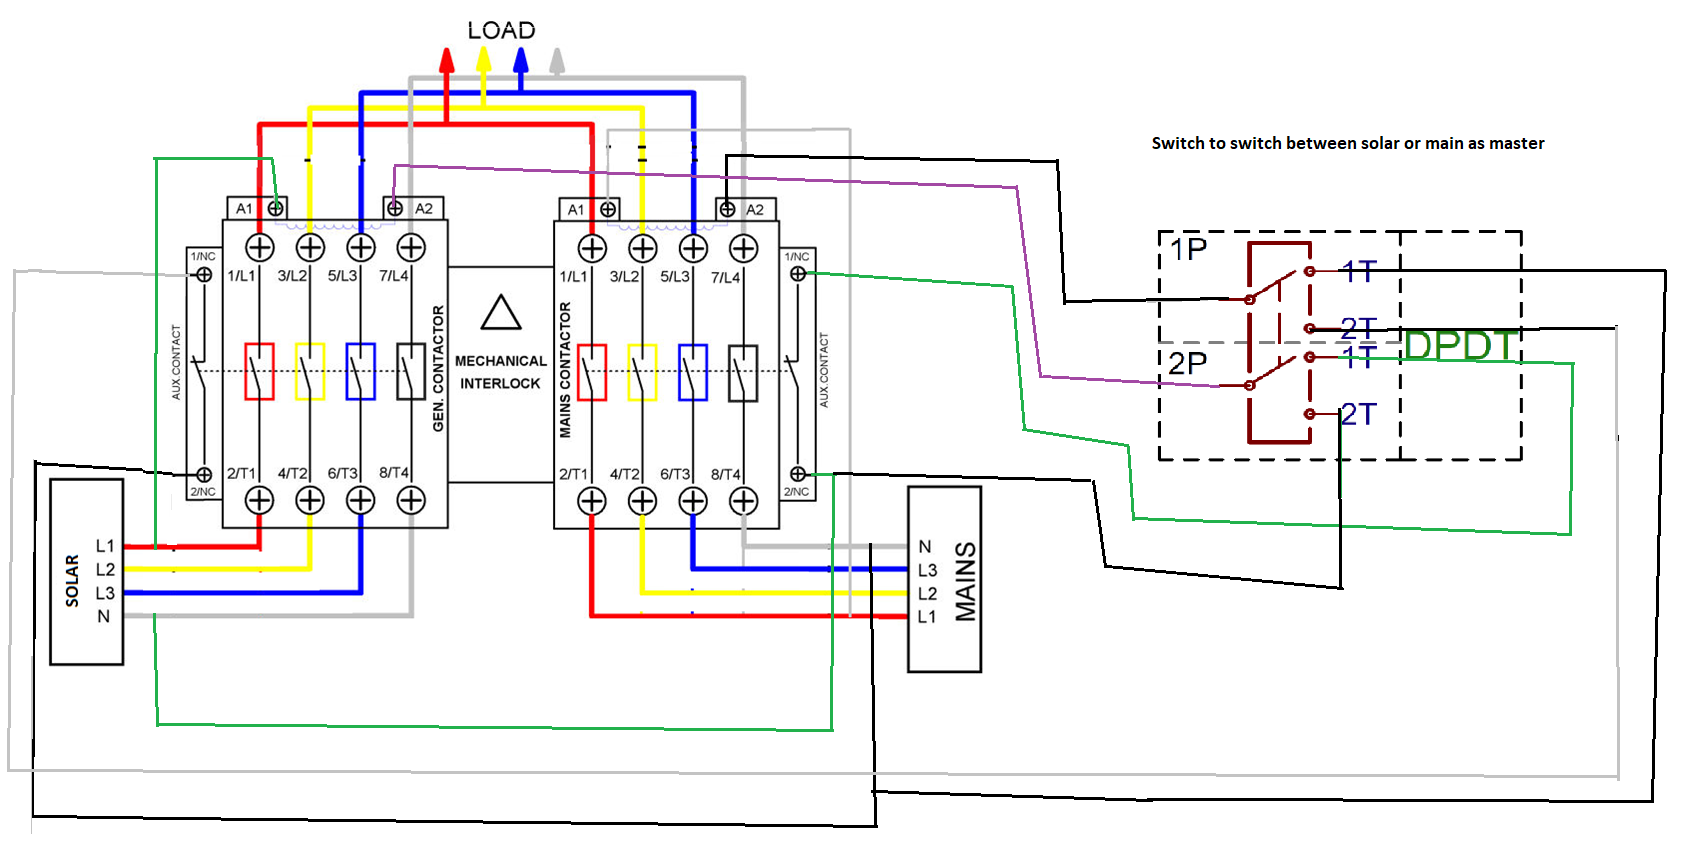 switching an schematic wiring diagram  | 350 x 242